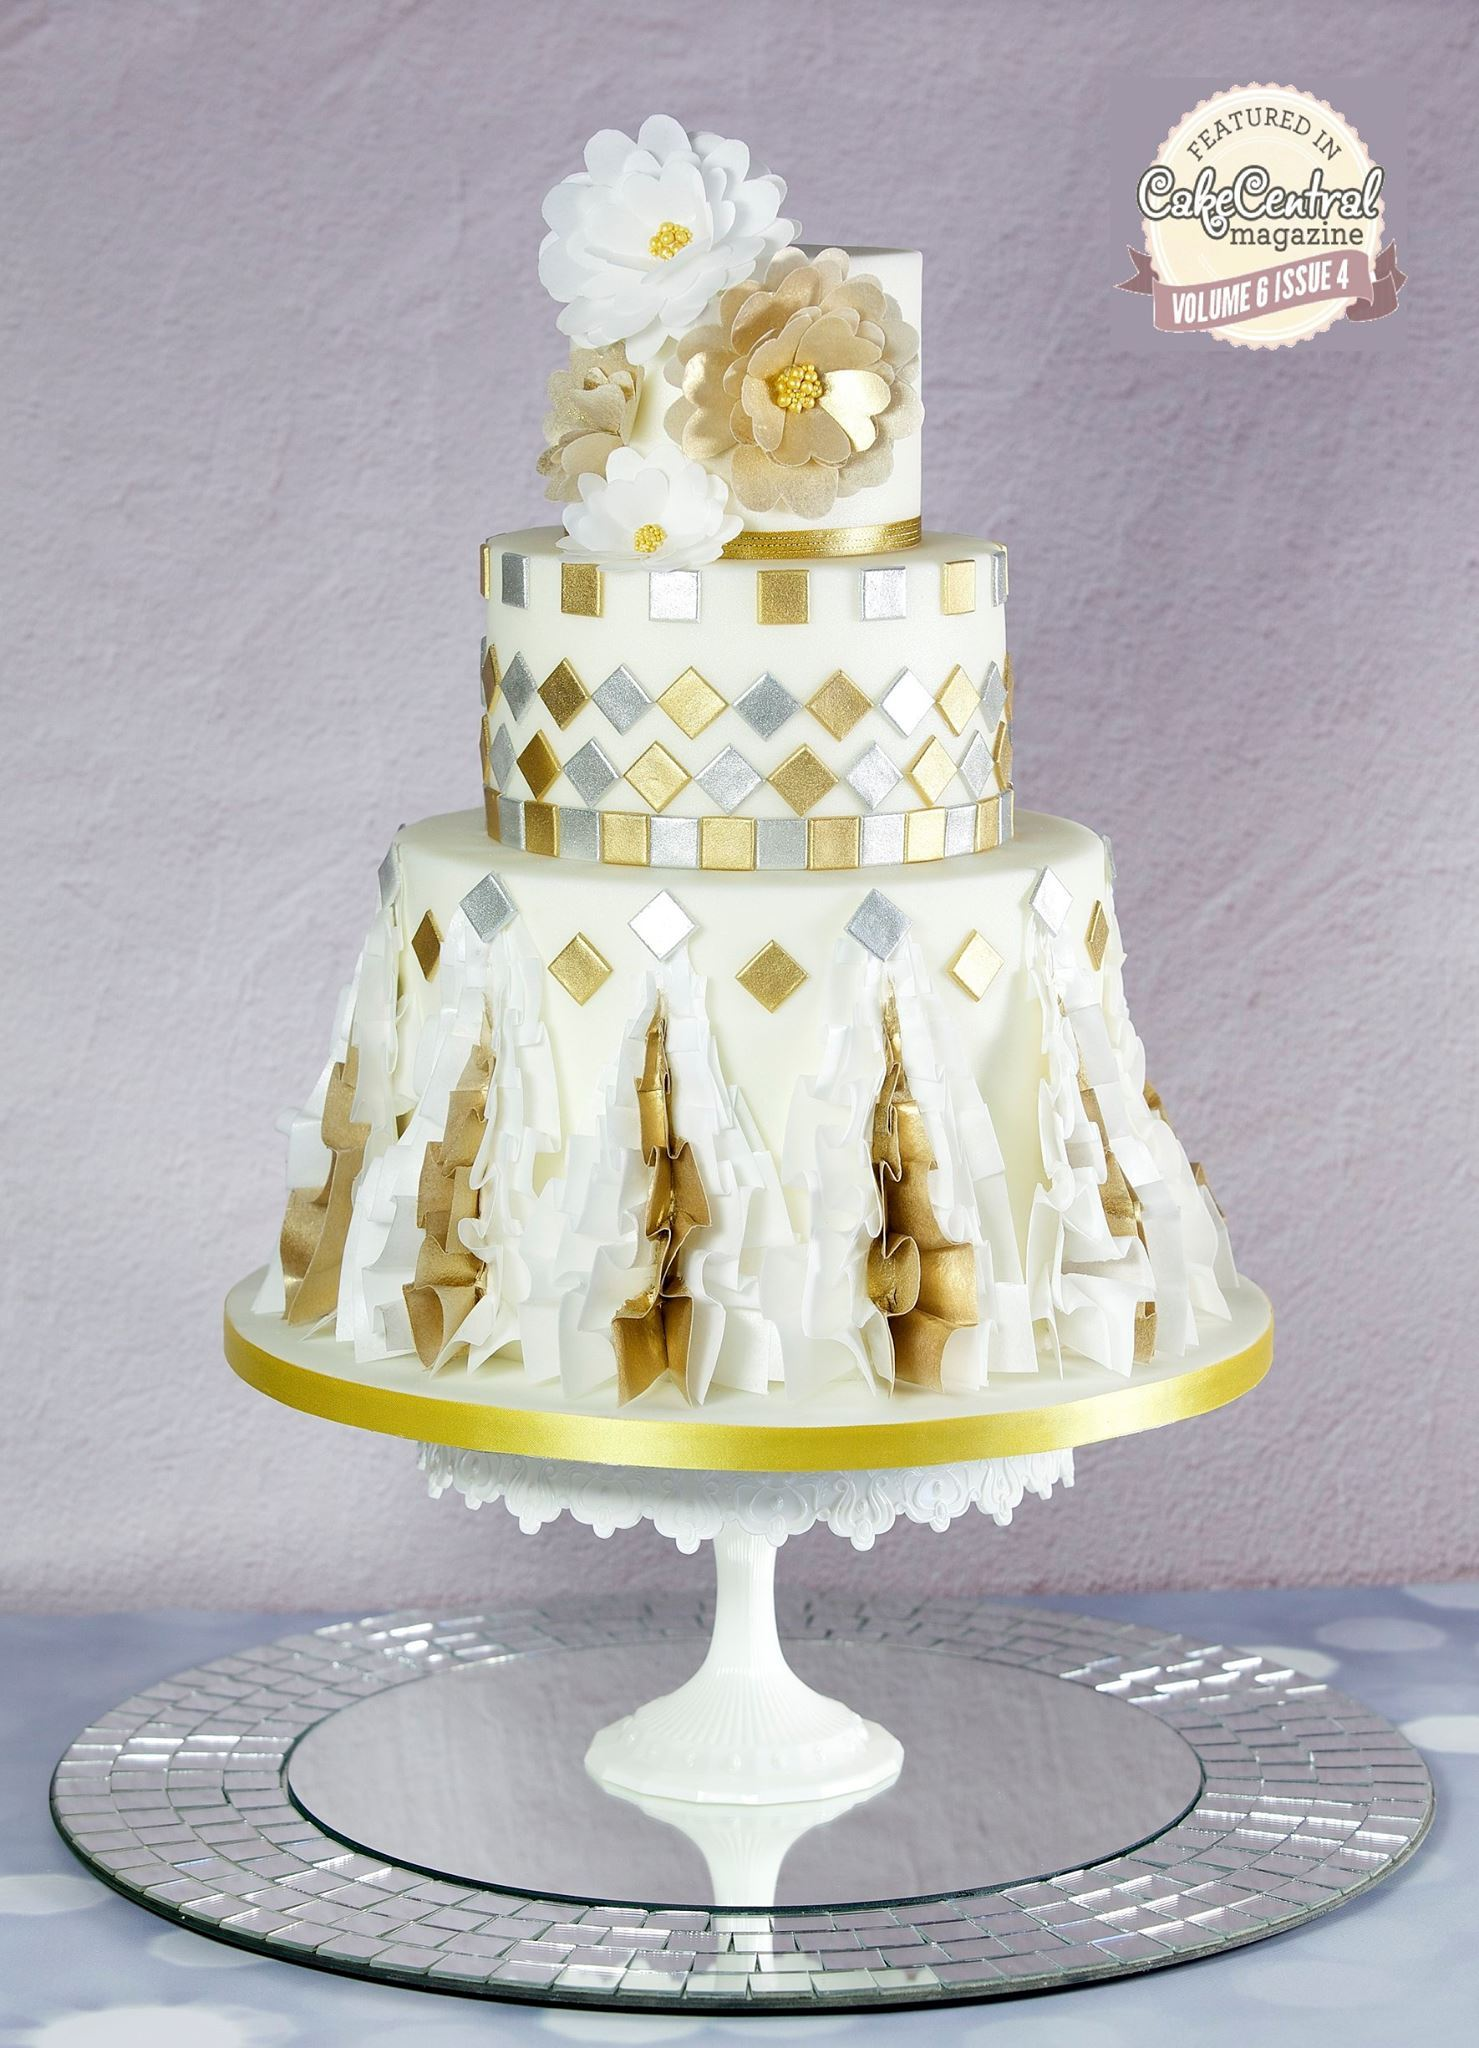 White ruffled fondant wedding cake with gold